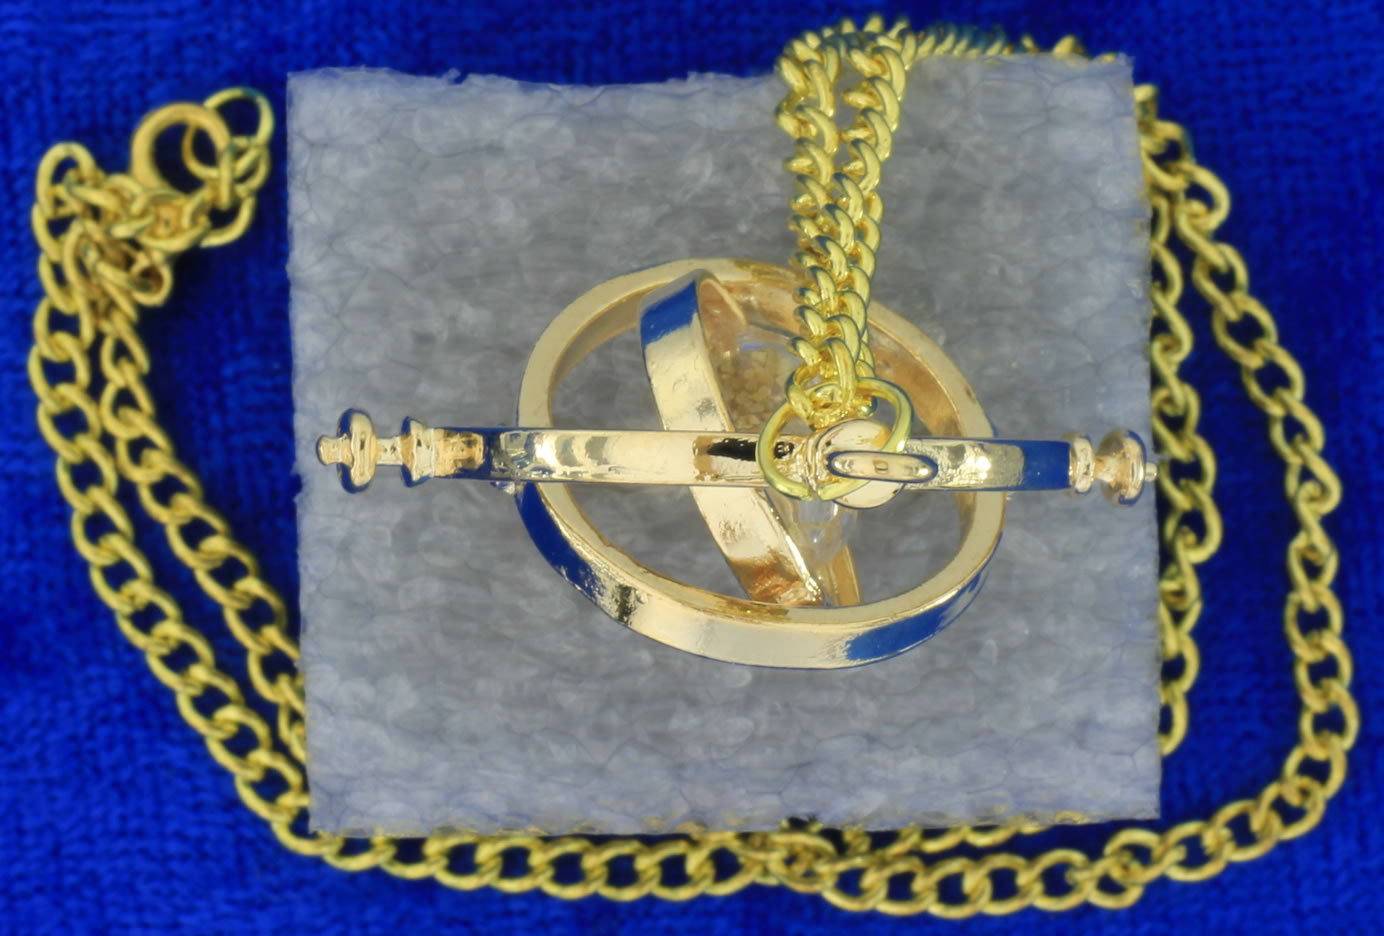 Time Turner Hermione Granger's Necklace Gold/Beige Gyroscope Rings Small